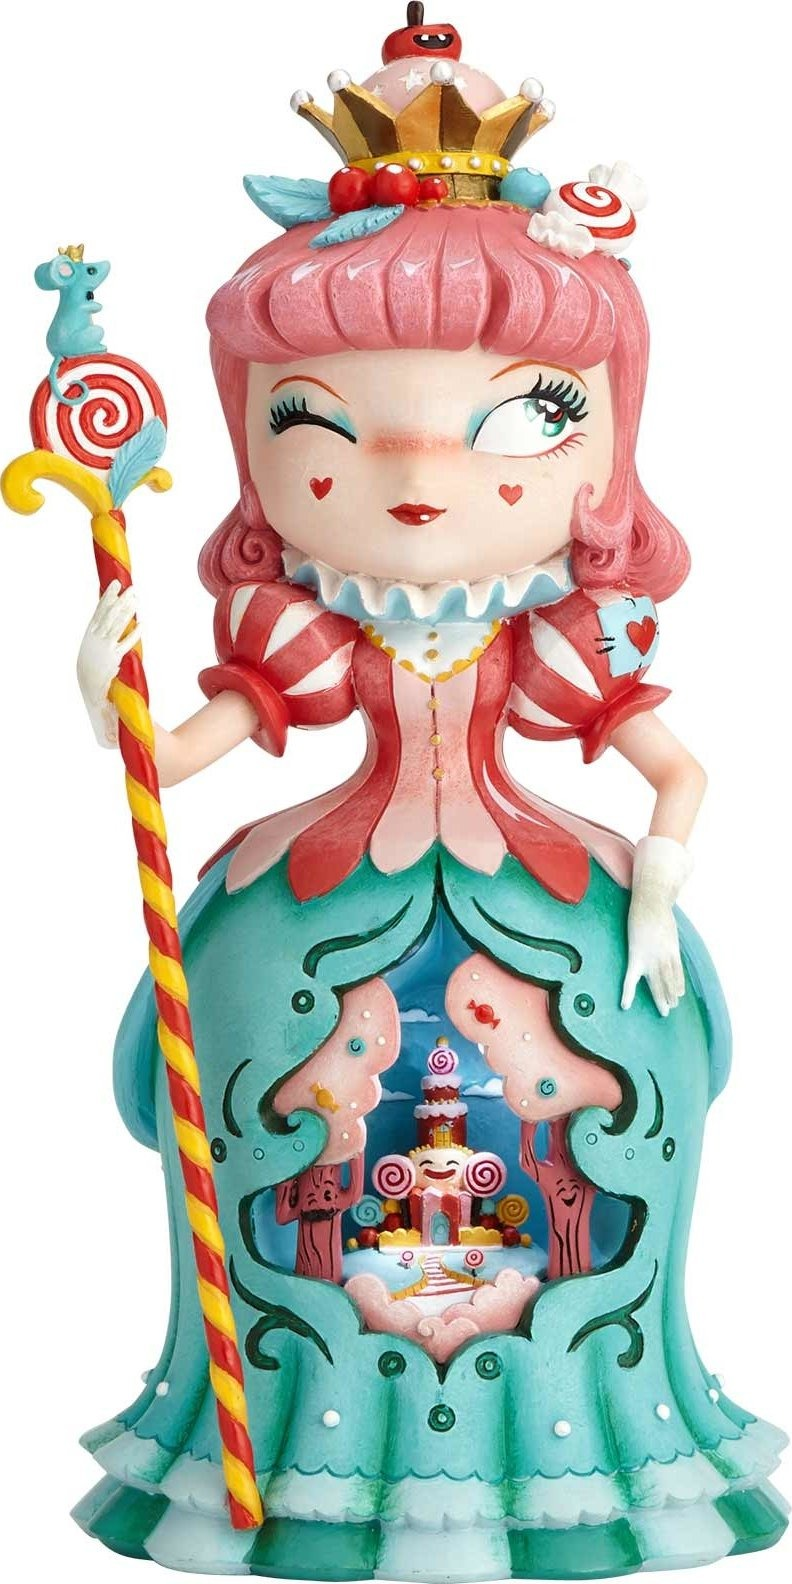 World of Miss Mindy 4060318 Candy Queen Deluxe Figurine